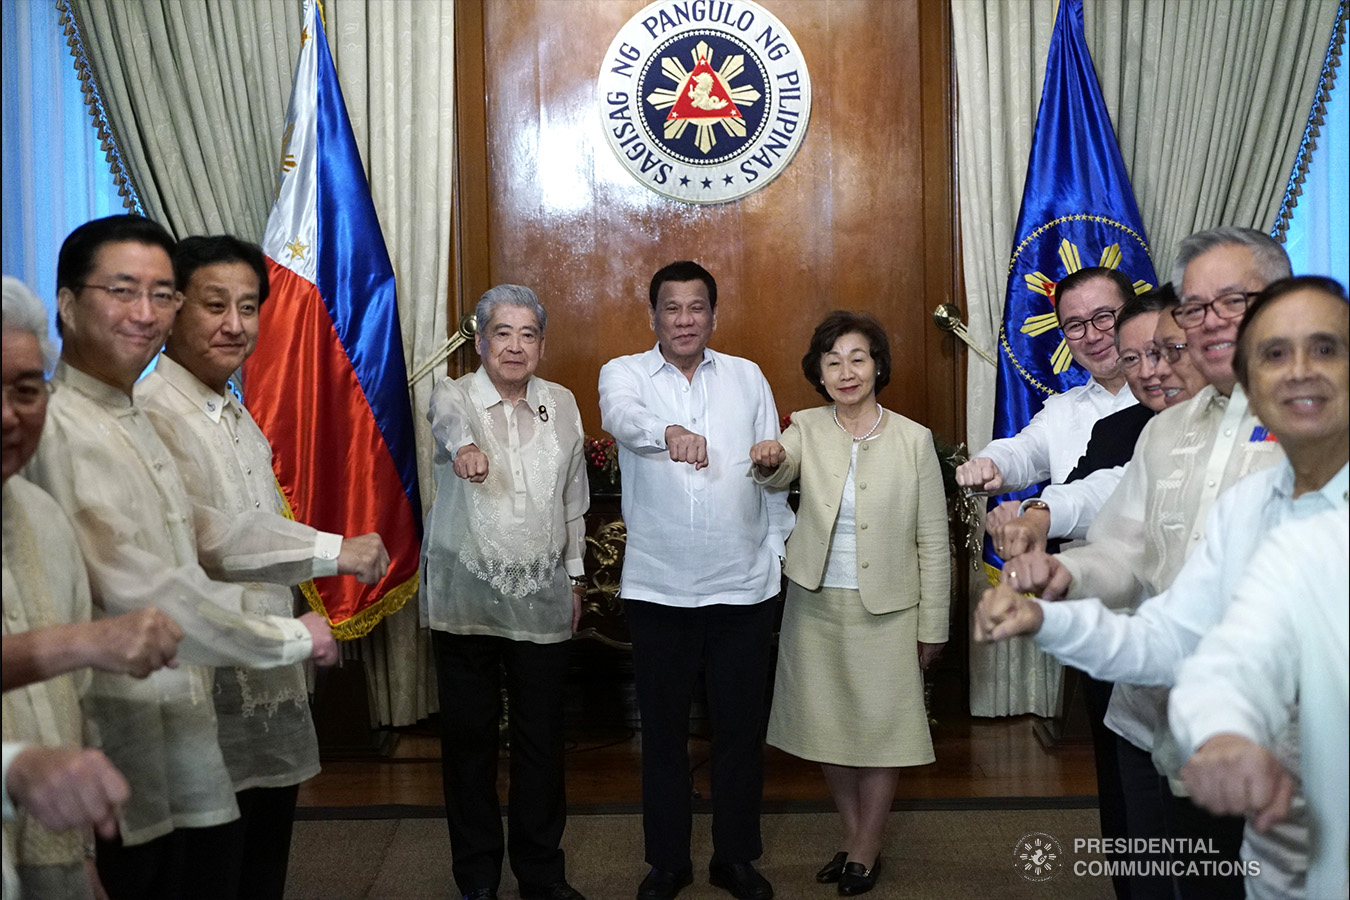 In photo:  President Duterte does his signature pose with members of Japan House of Councillors